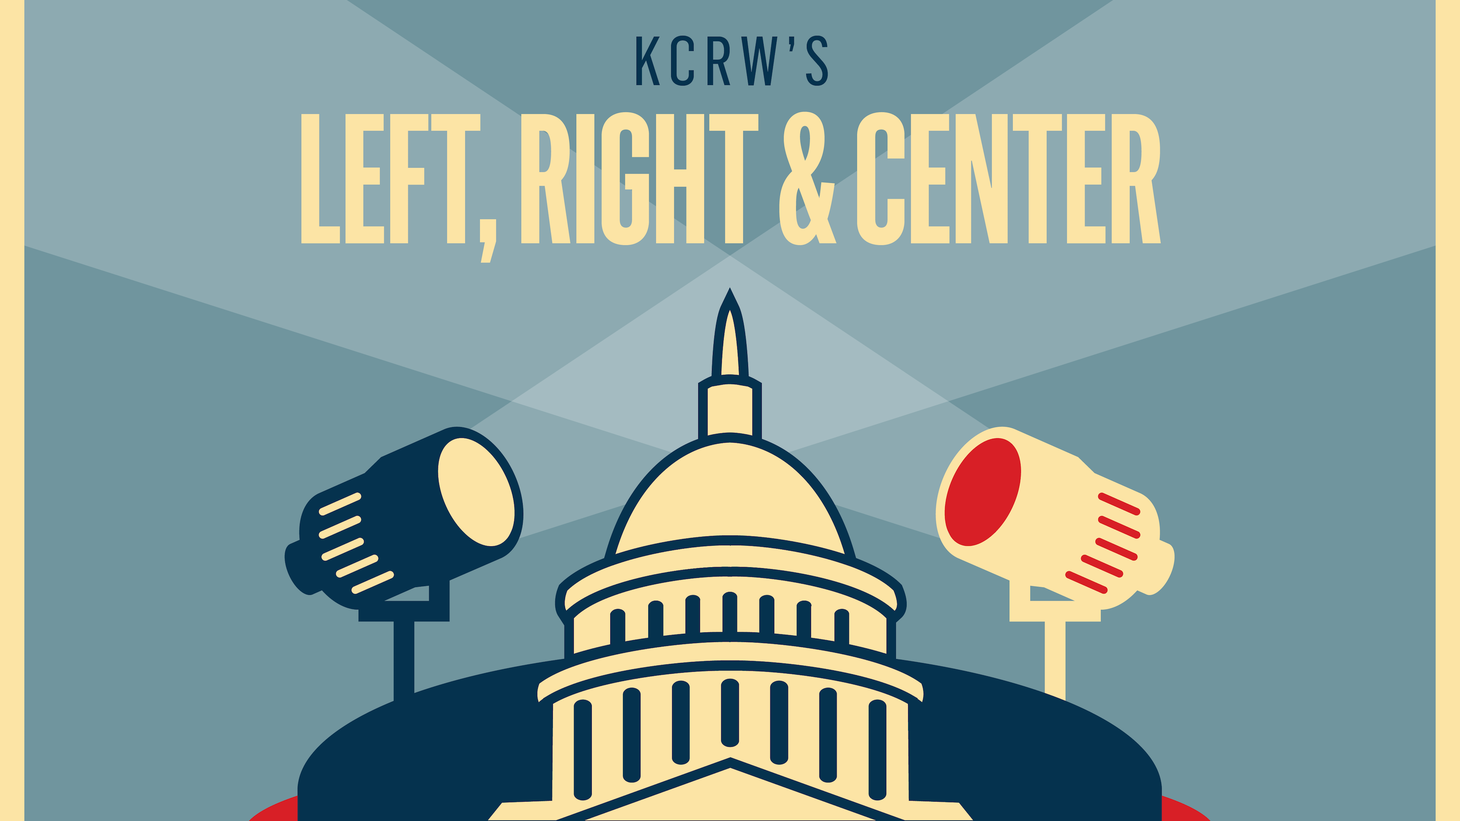 Bush takes a holiday on Iraq. Tim Johnson hangs in the balance.  Plus, Jimmy Carter's apartheid, Wall Street's year-end bonuses, and McCain kills Hillary in the polls.